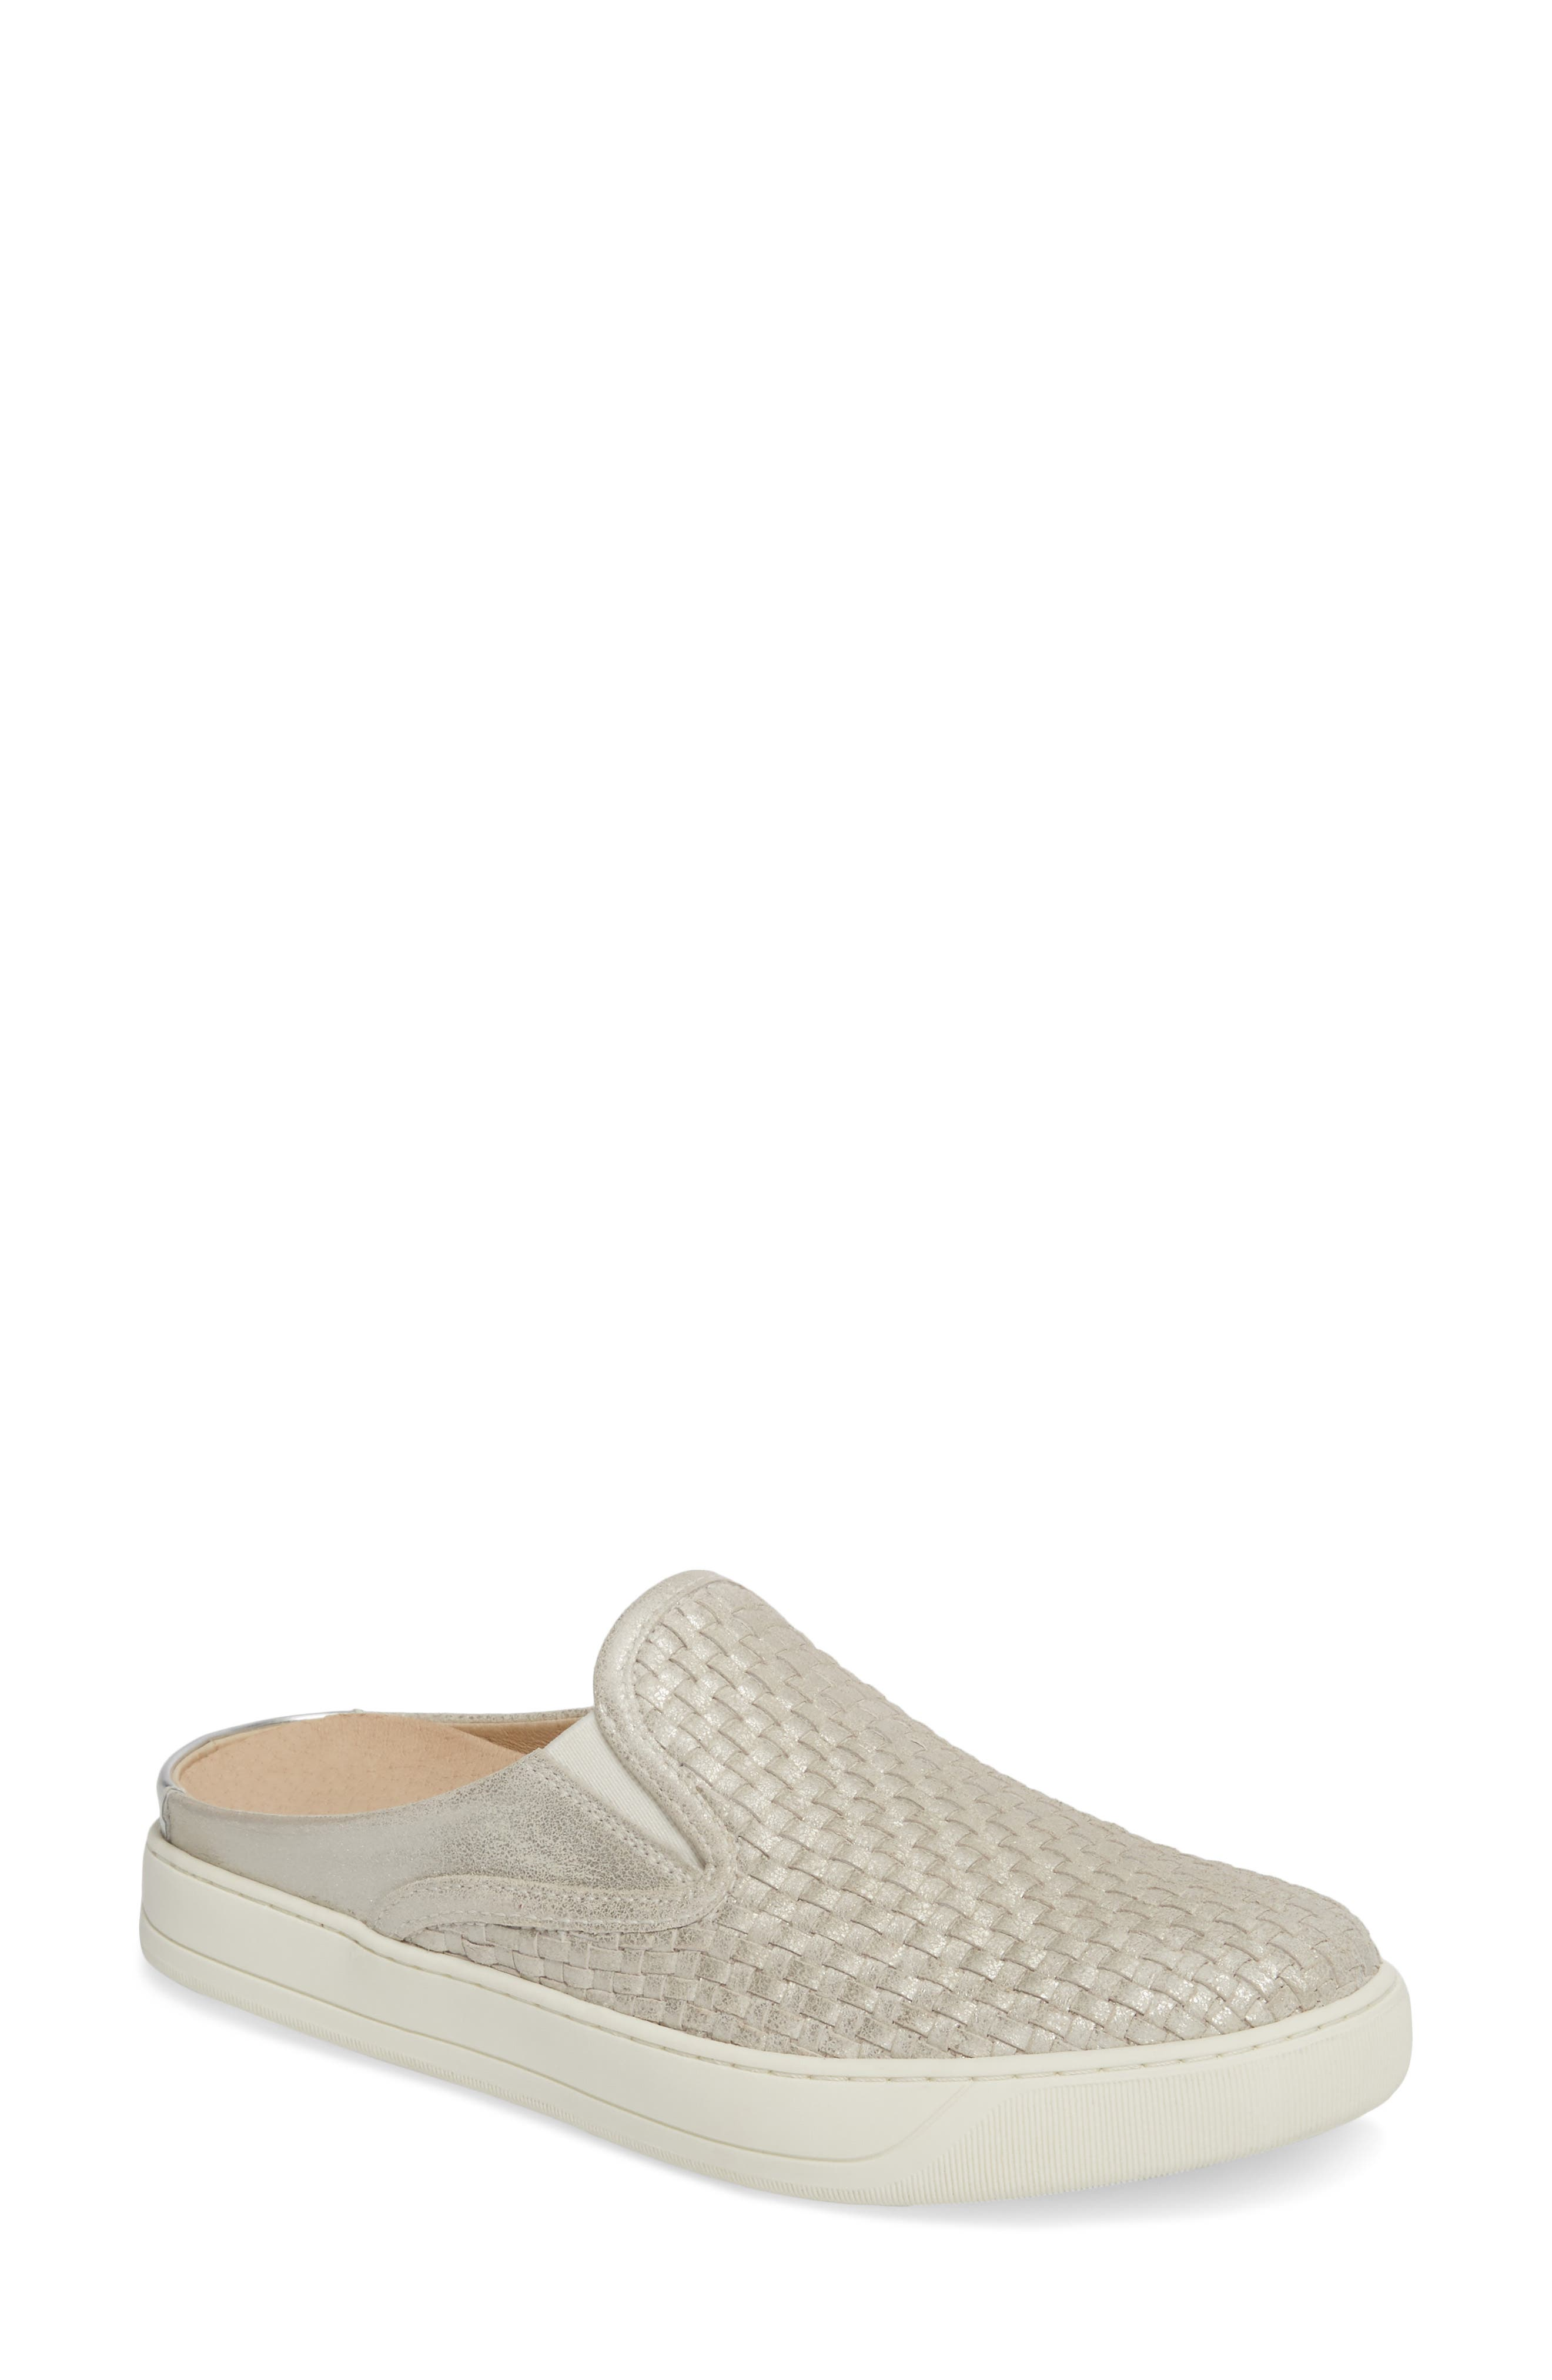 Evie Slip-On Sneaker,                         Main,                         color, ICE LEATHER